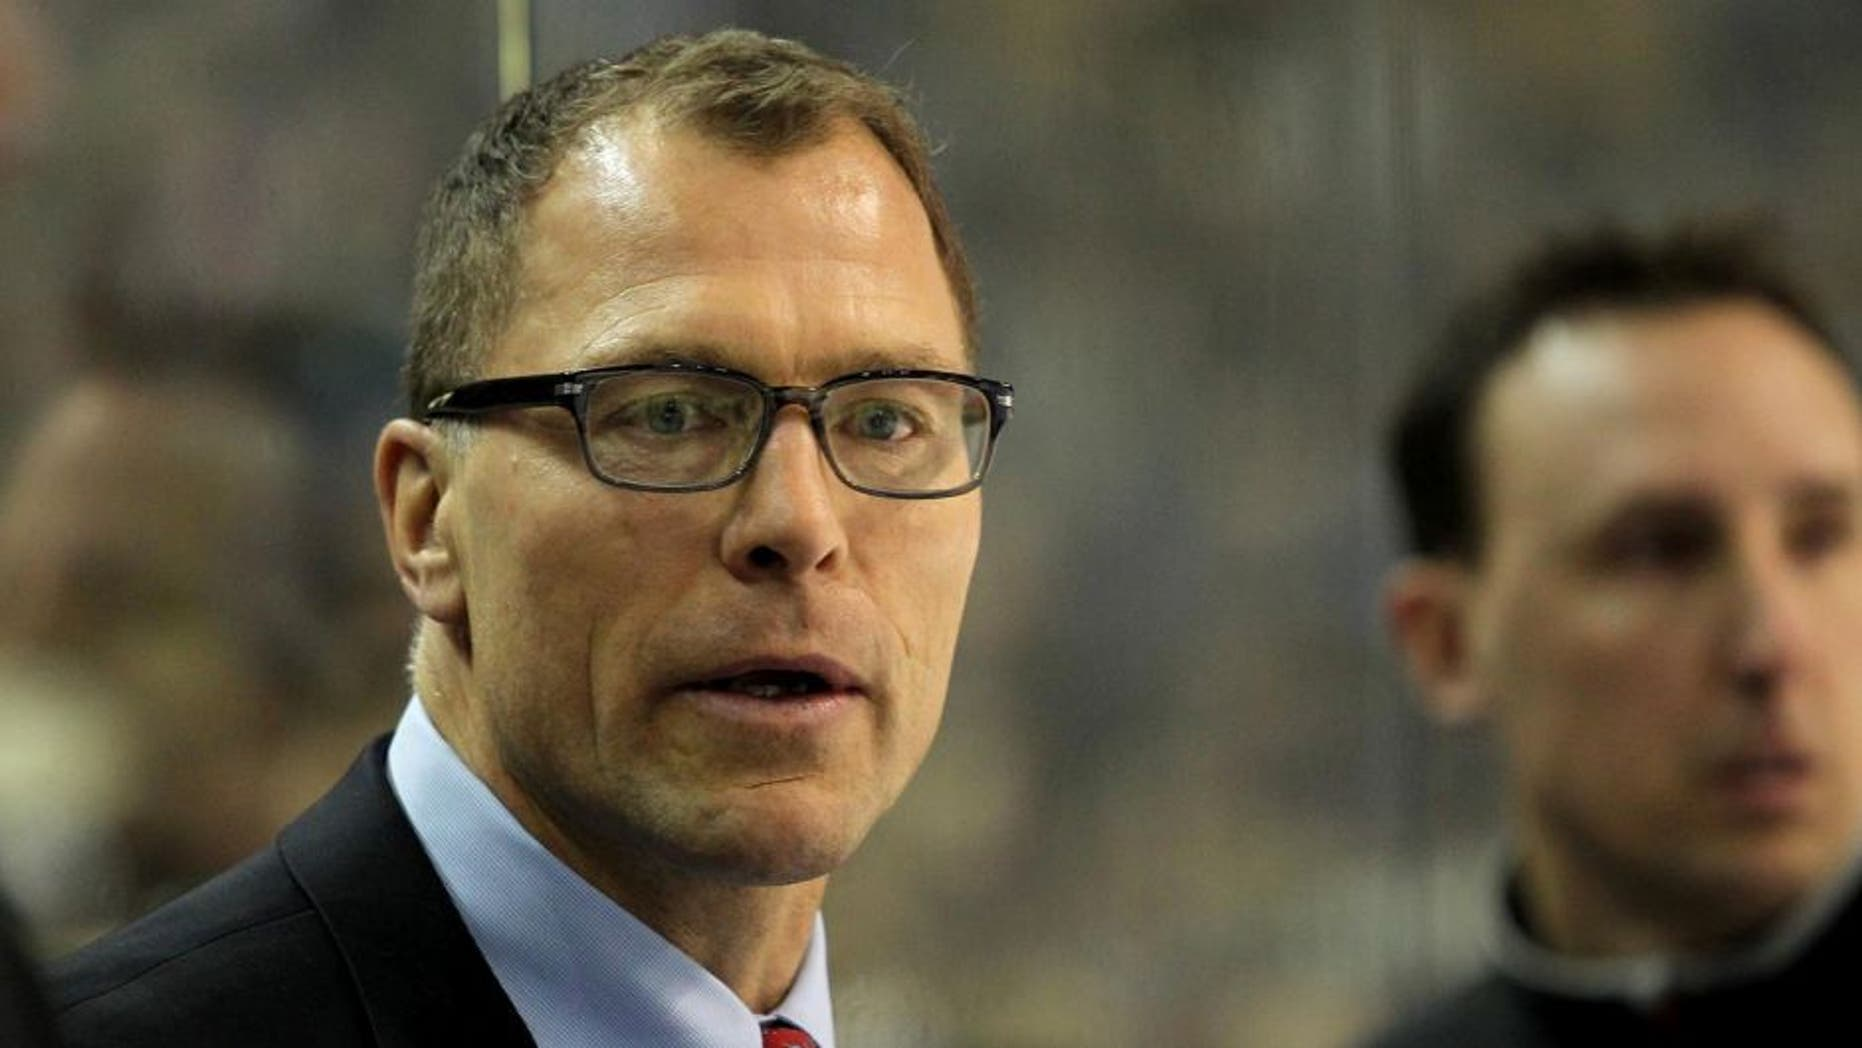 Mar. 2, 2013; Buffalo, NY, USA; New Jersey Devils assistant coach Scott Stevens on the bench against the Buffalo Sabres at First Niagara Center. Mandatory Credit: Timothy T. Ludwig-USA TODAY Sports